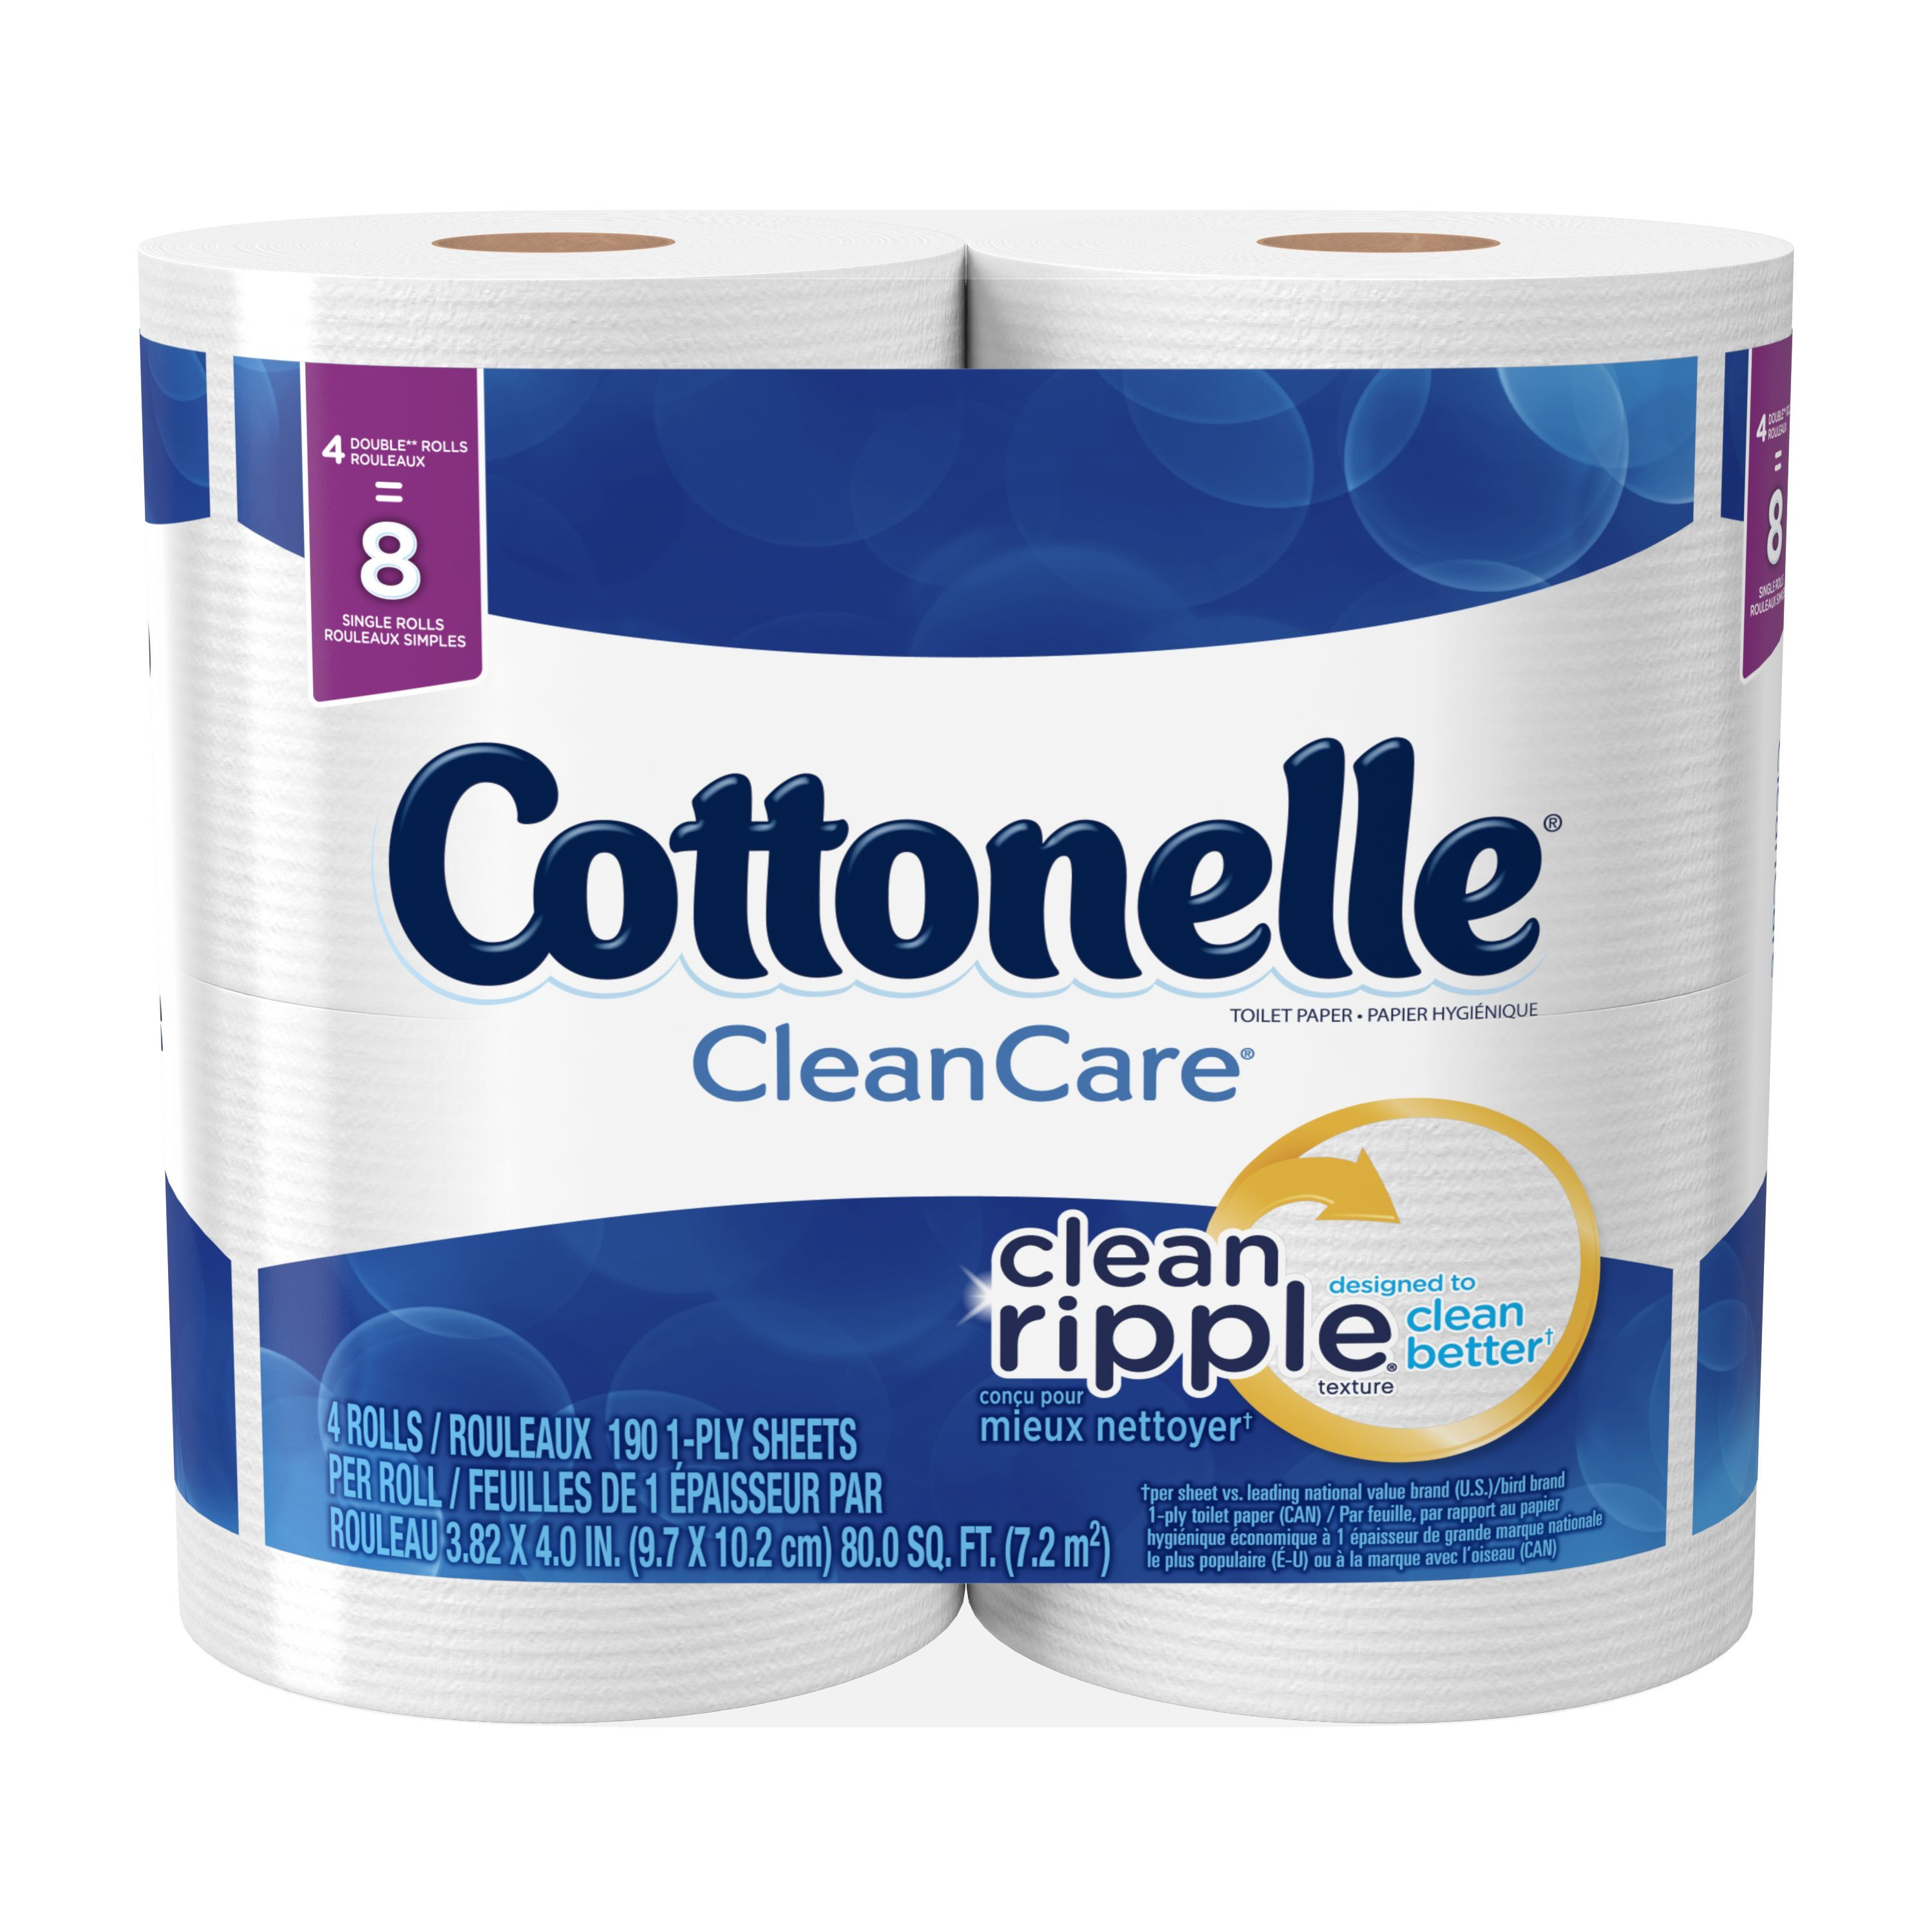 Cottonelle Clean Care Toilet Paper Double Rolls, 190 SHeets per Roll, 4 Rolls by KIMBERLY-CLARK